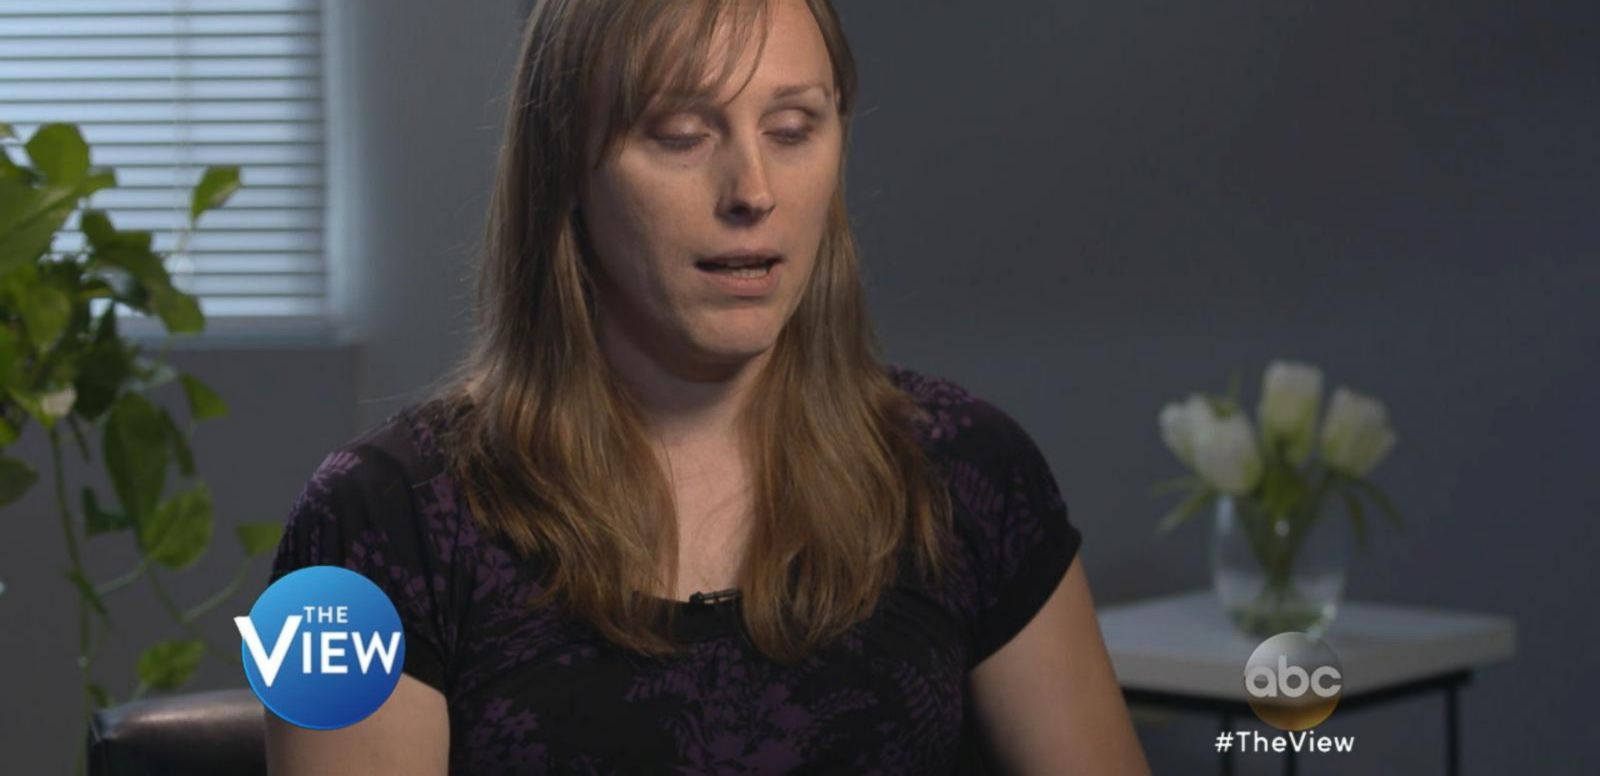 VIDEO: Transgender Residents Of North Carolina Share Their Perspective On HB2 Law